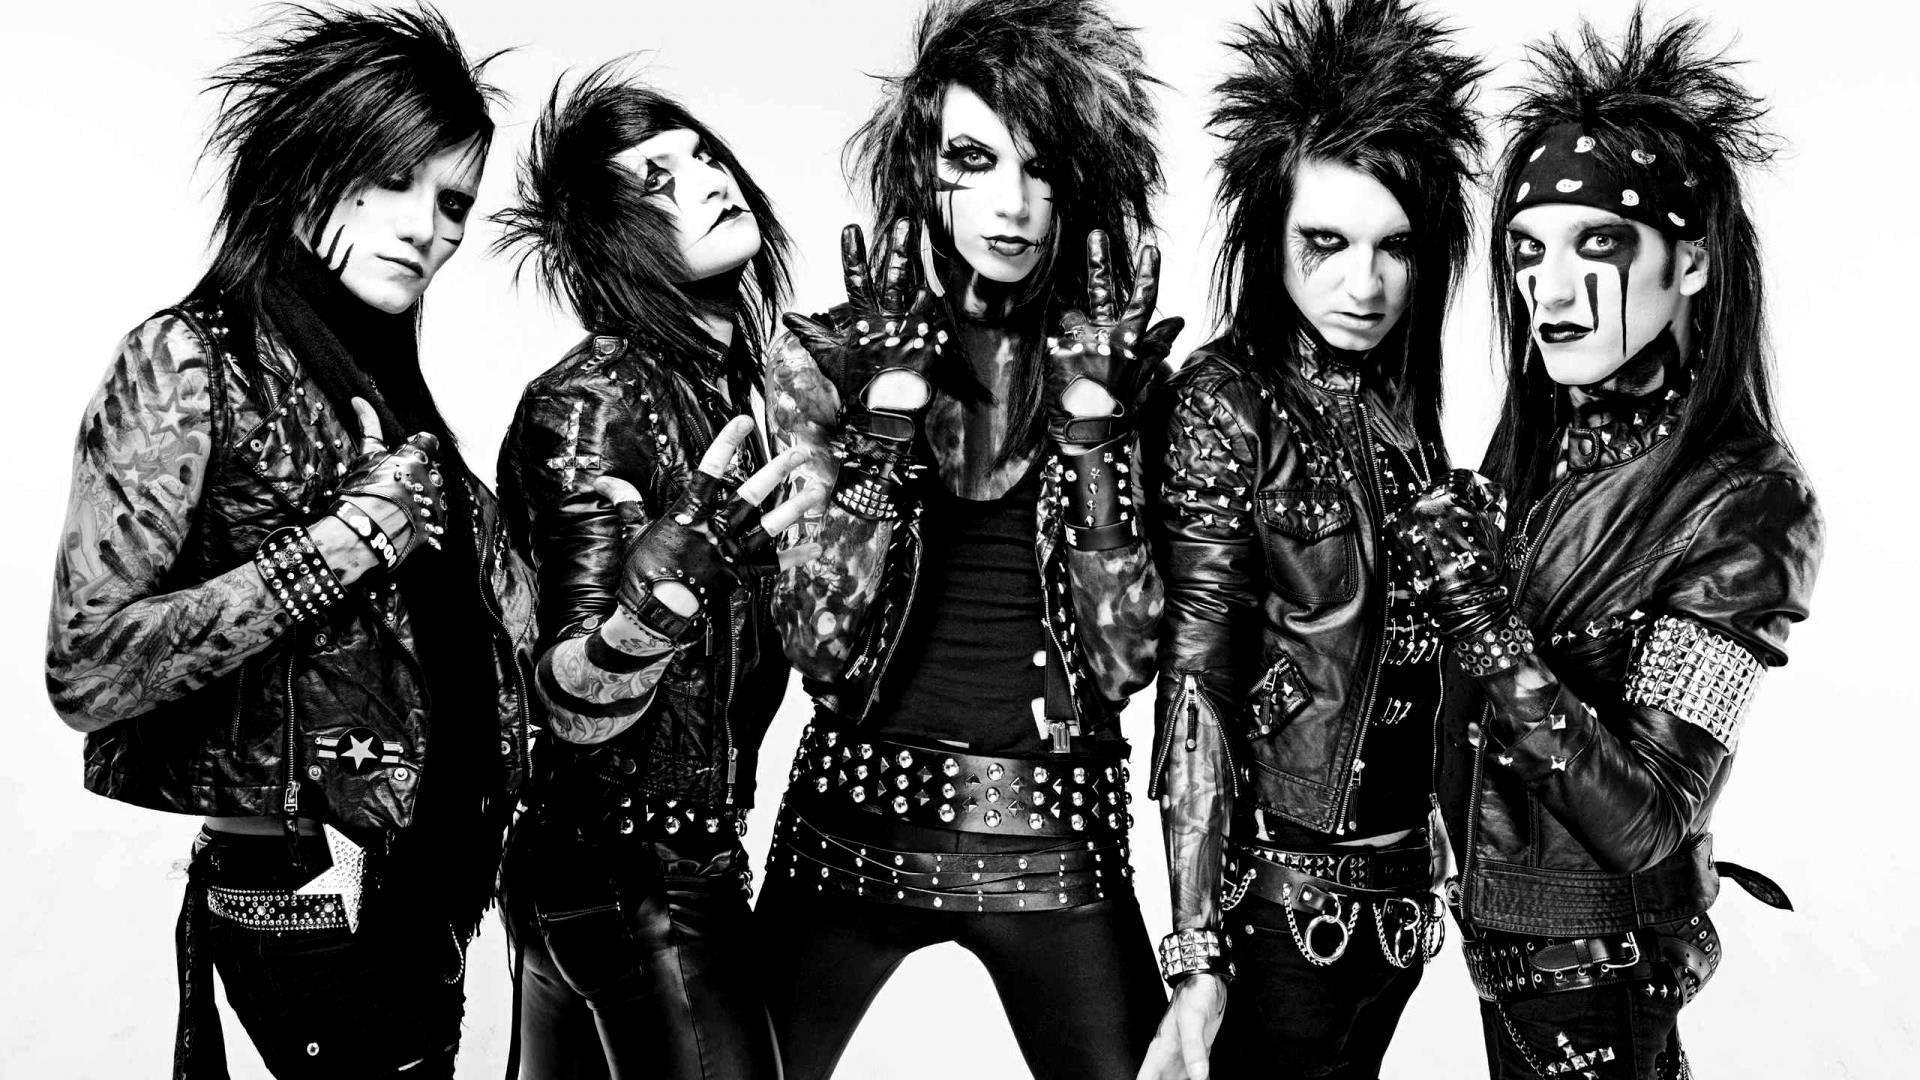 BVB Time! by BewareOfTheMonkey on DeviantArt